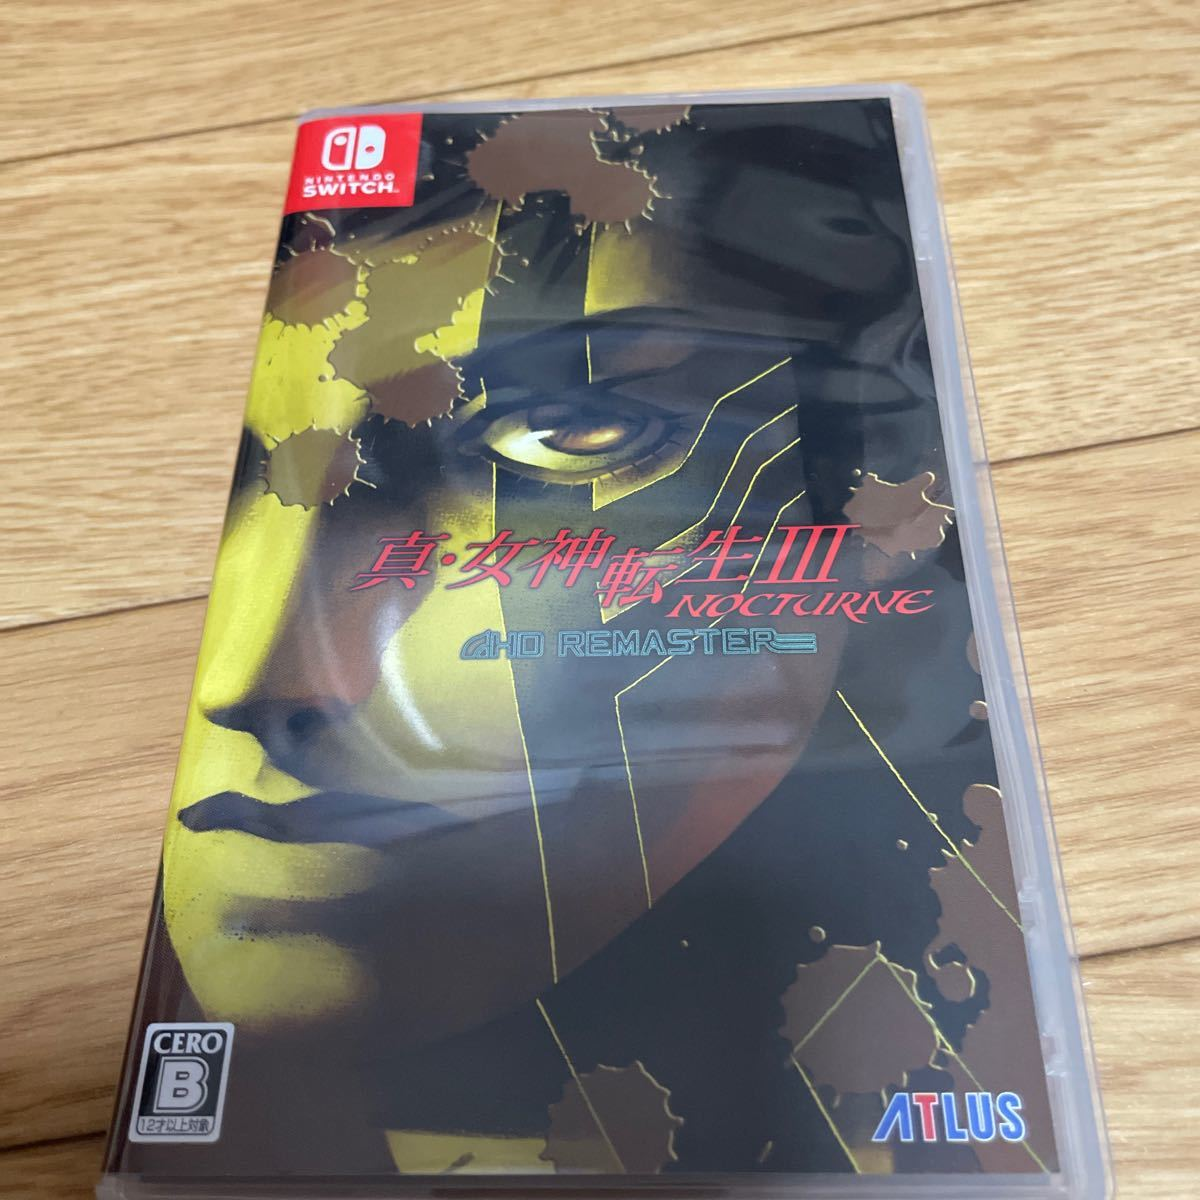 Switch 真・女神転生III NOCTURNE HD REMASTER ニンテンドースイッチ /真女神転生3 ノクターン